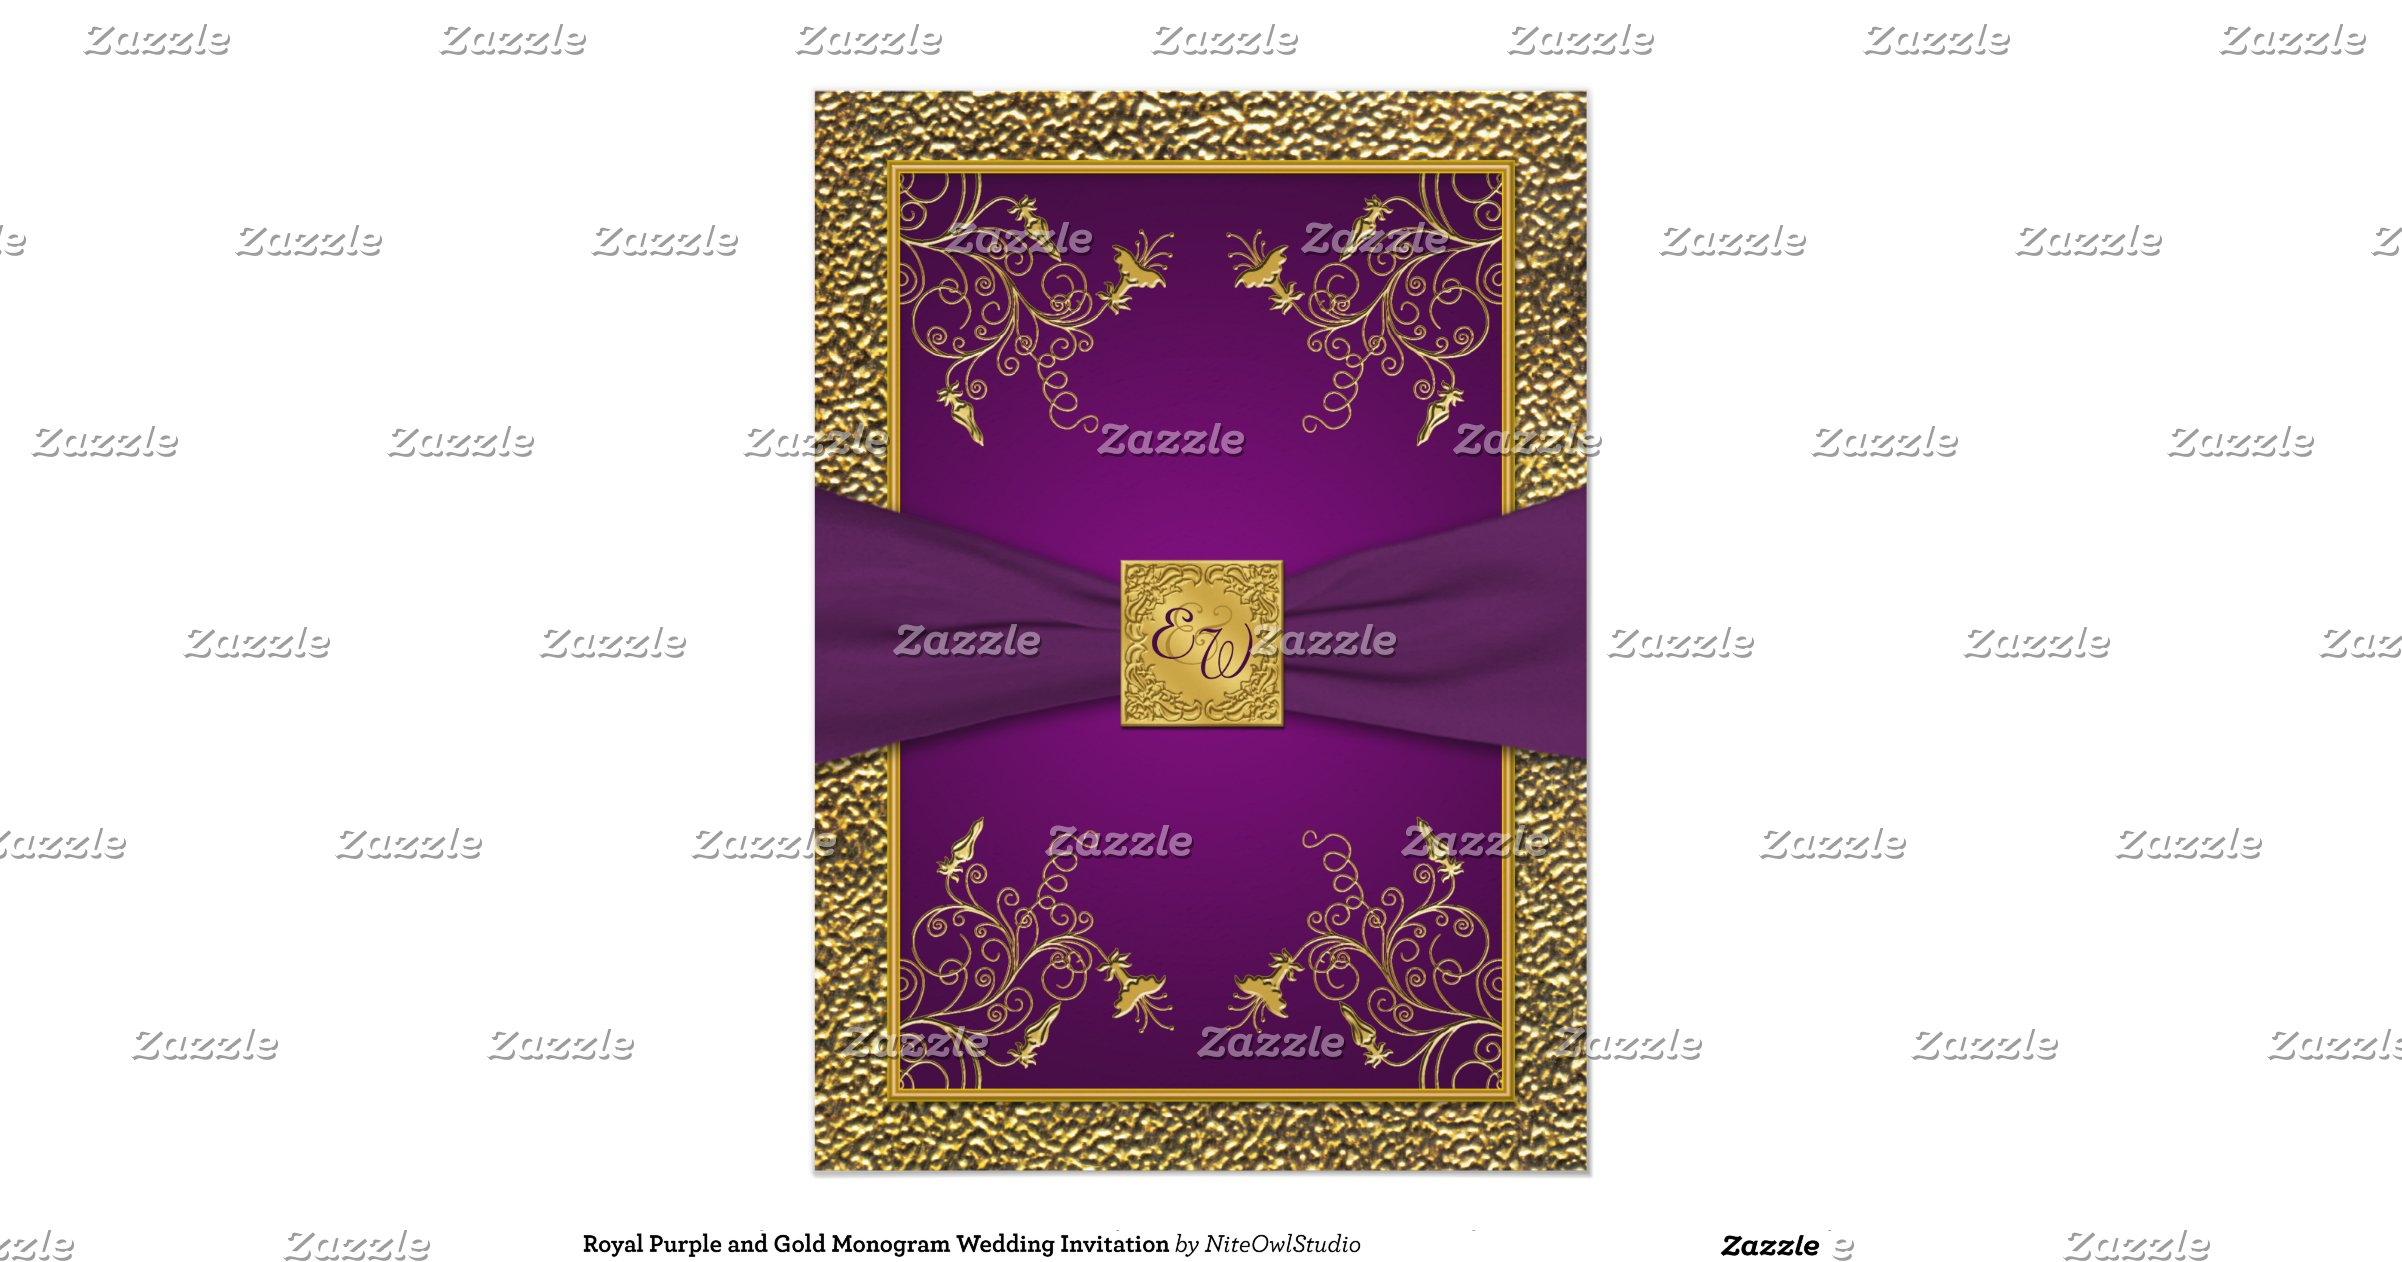 Royal Blue And Gold Wedding Invitations: Royal_purple_and_gold_monogram_wedding_invitation